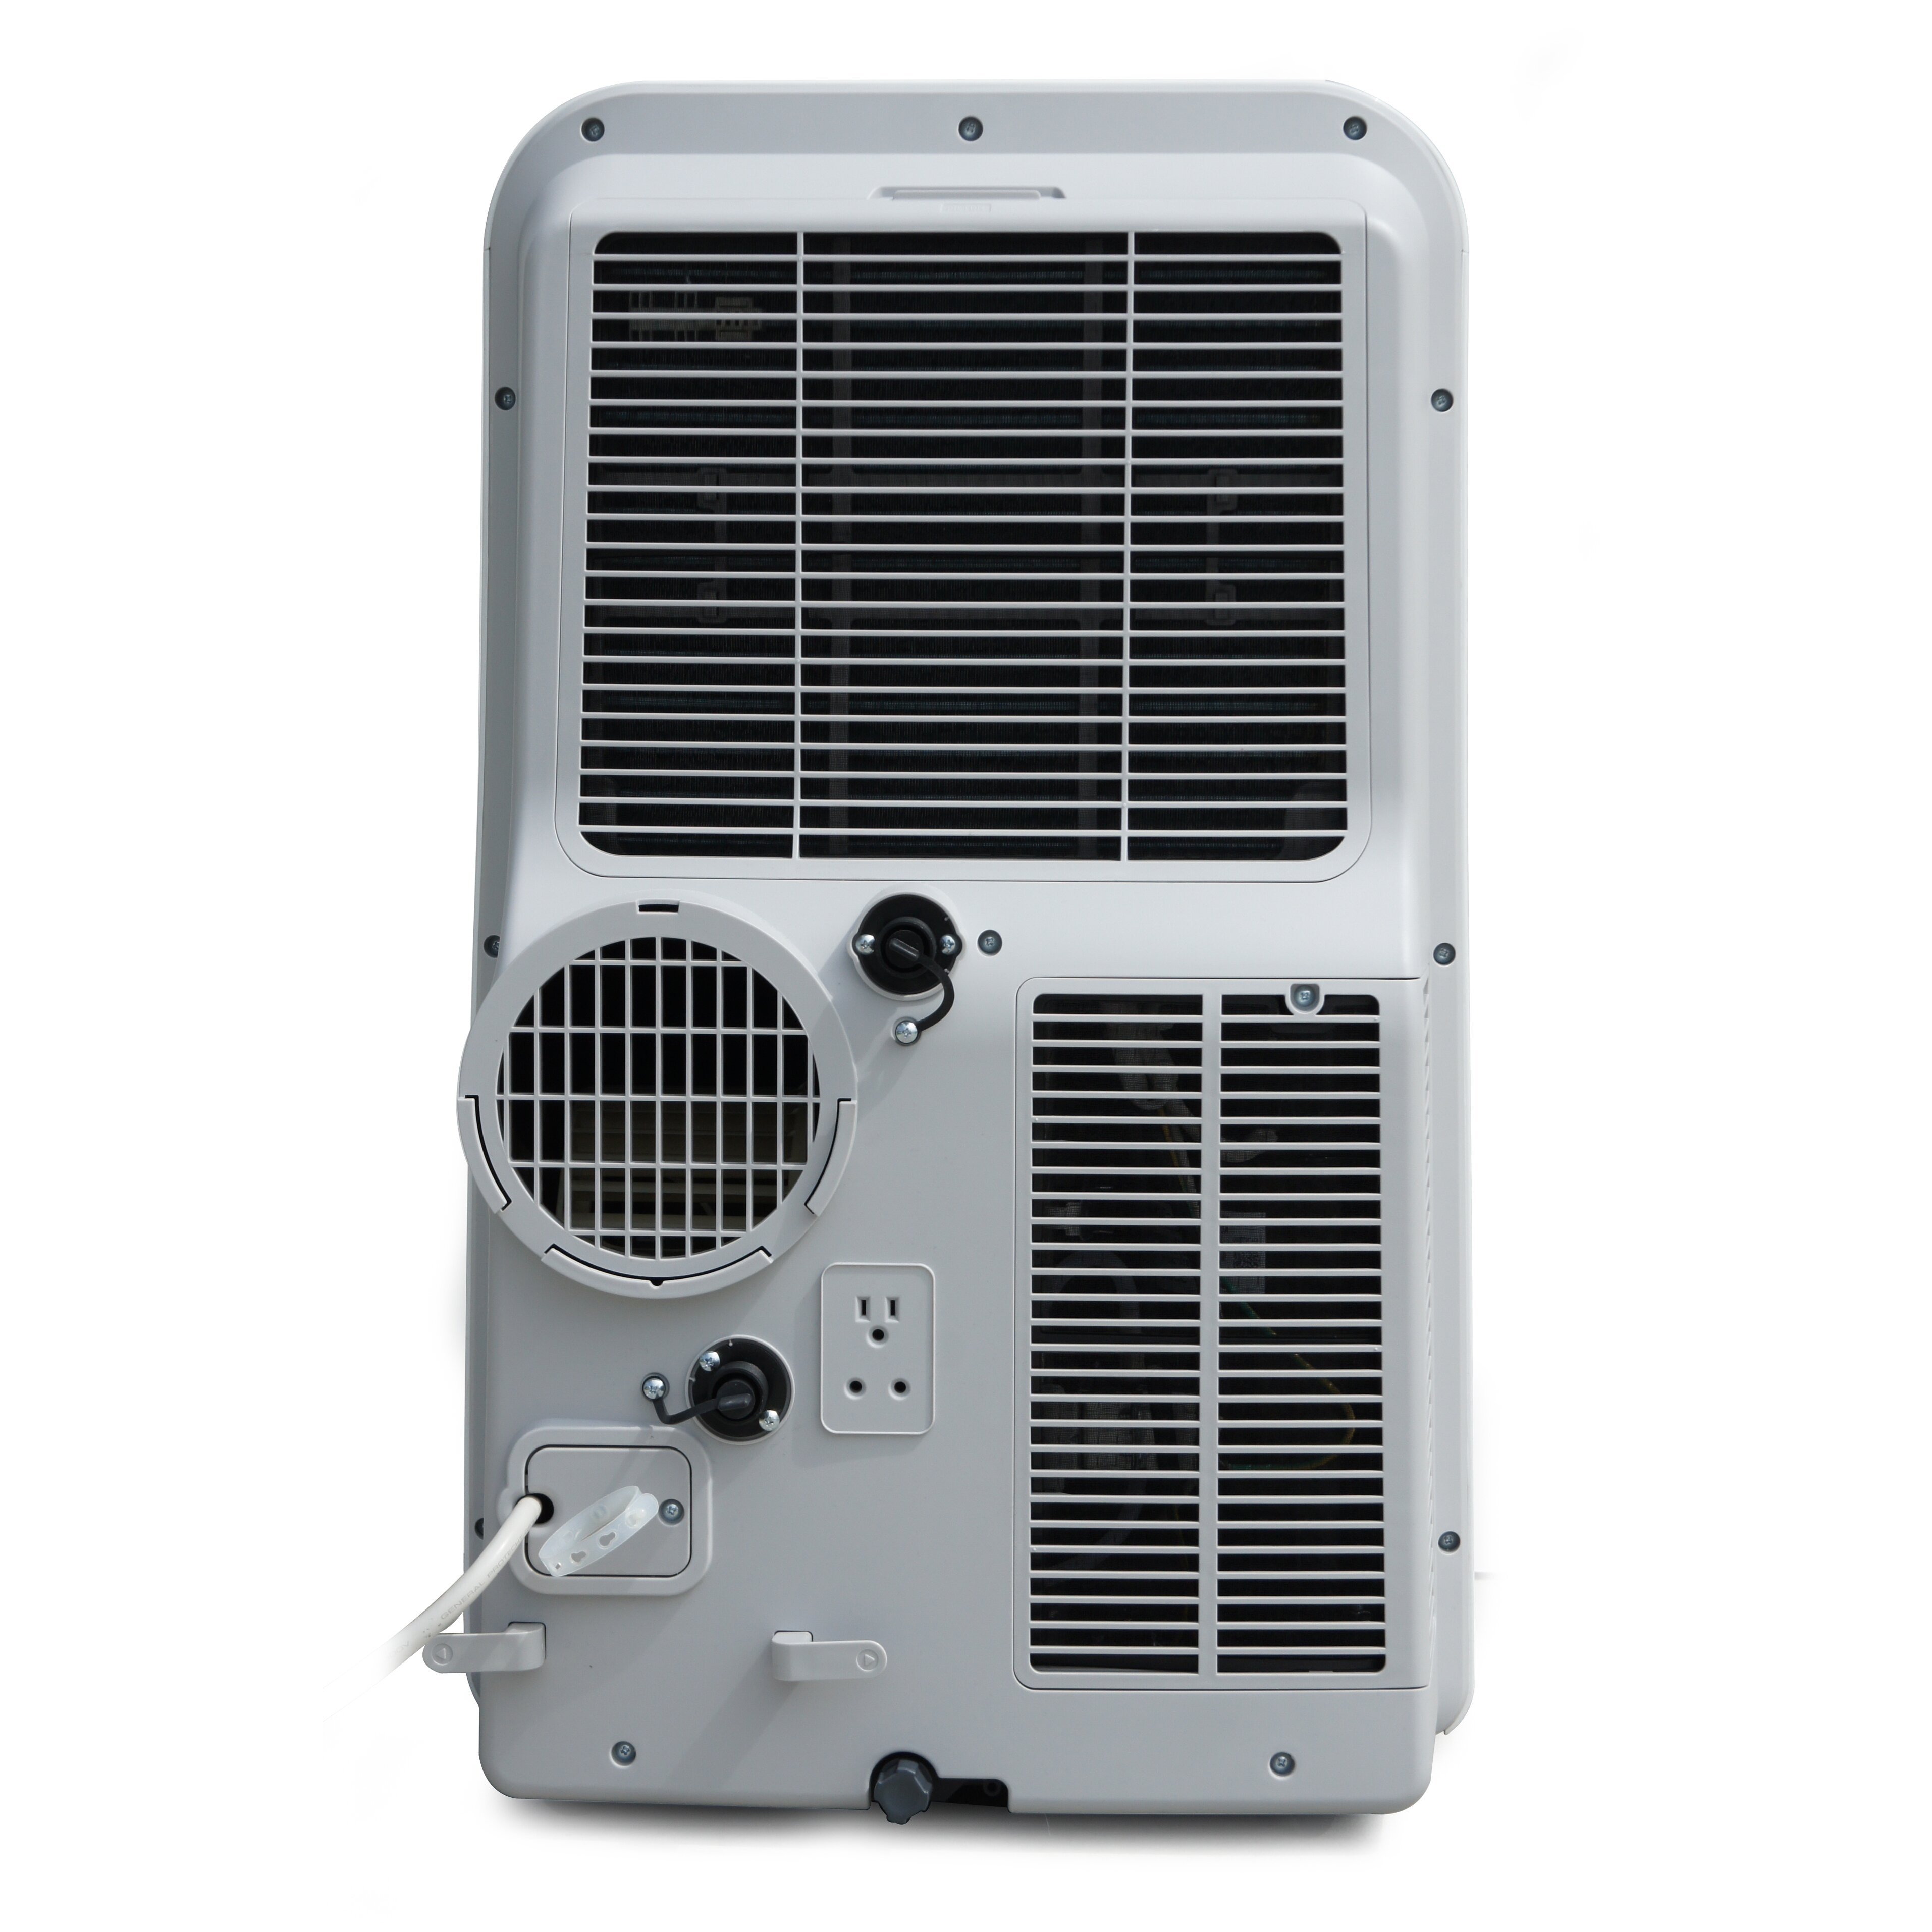 #5A6671 14 000 BTU Portable Air Conditioner With Heater Wayfair Brand New 12151 Heater Air Conditioner Portable images with 3828x3828 px on helpvideos.info - Air Conditioners, Air Coolers and more